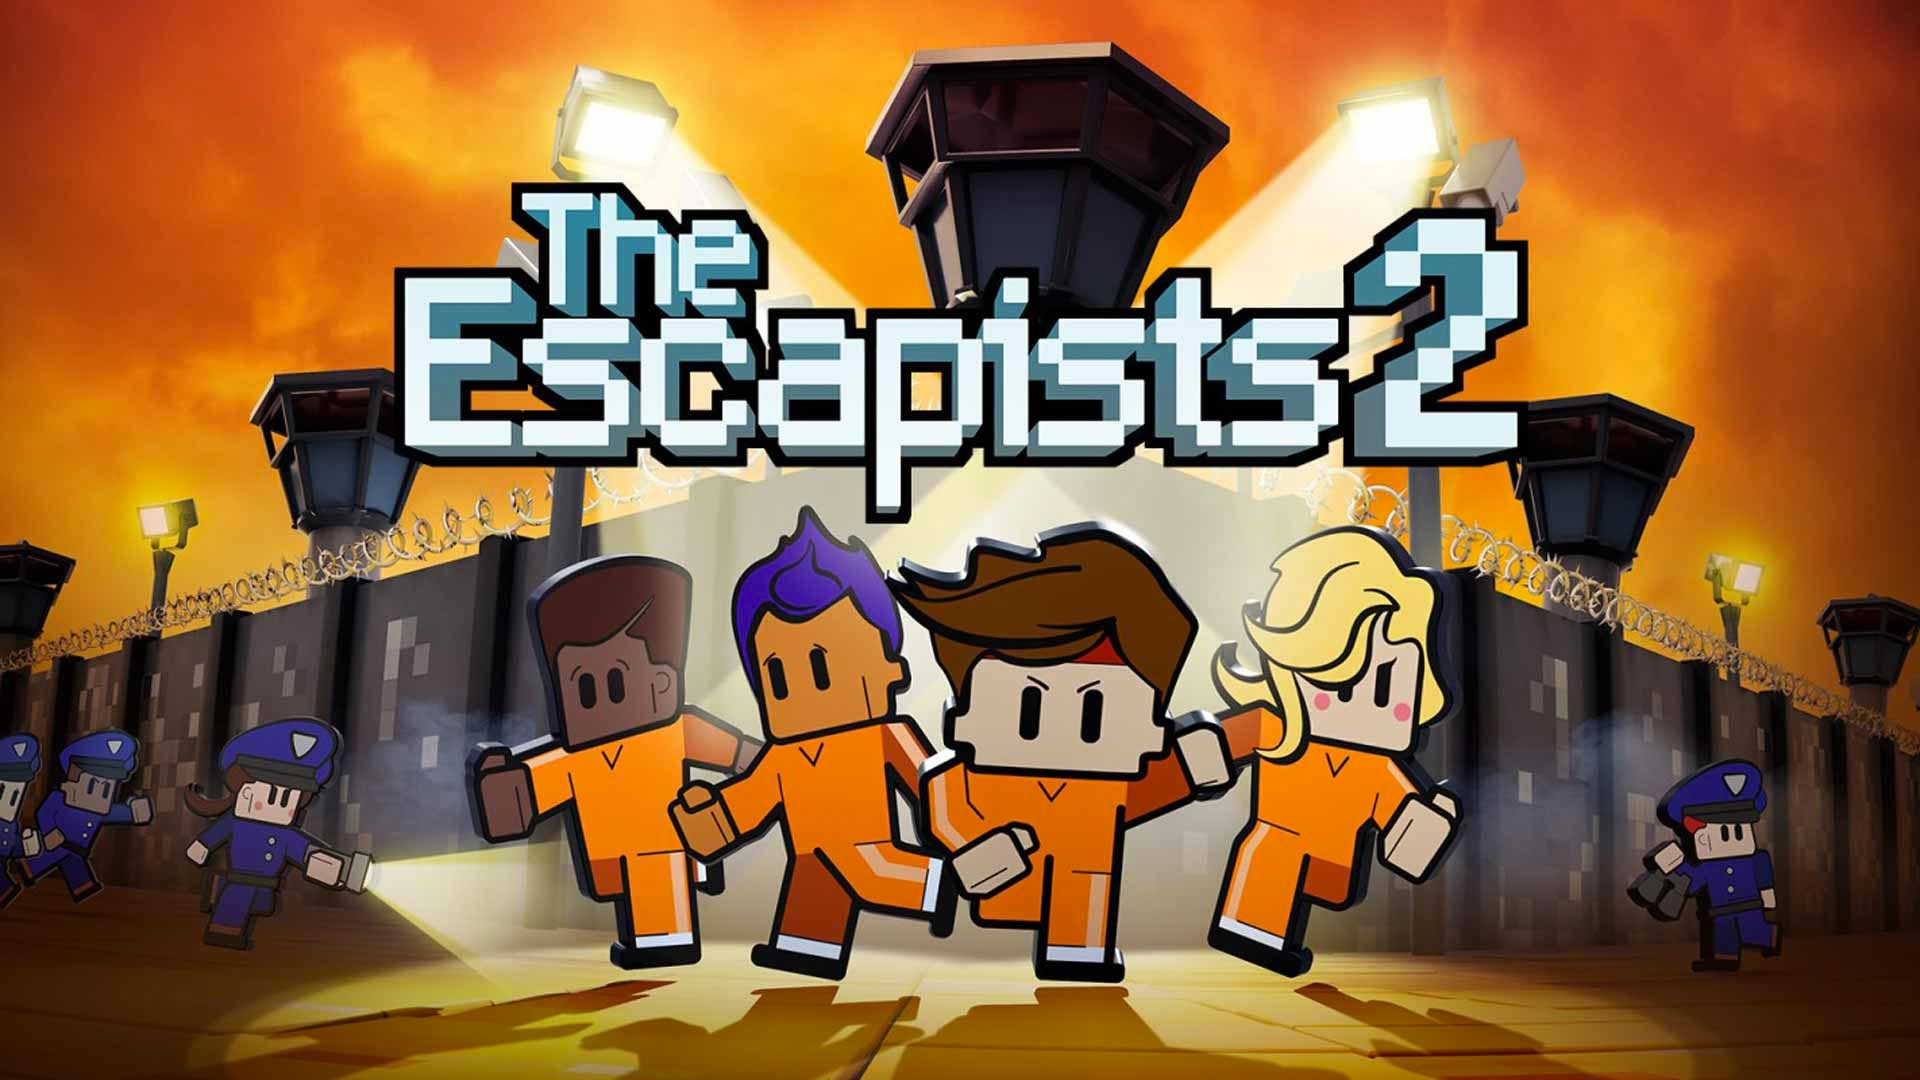 Share your thoughts on The Escapists 2